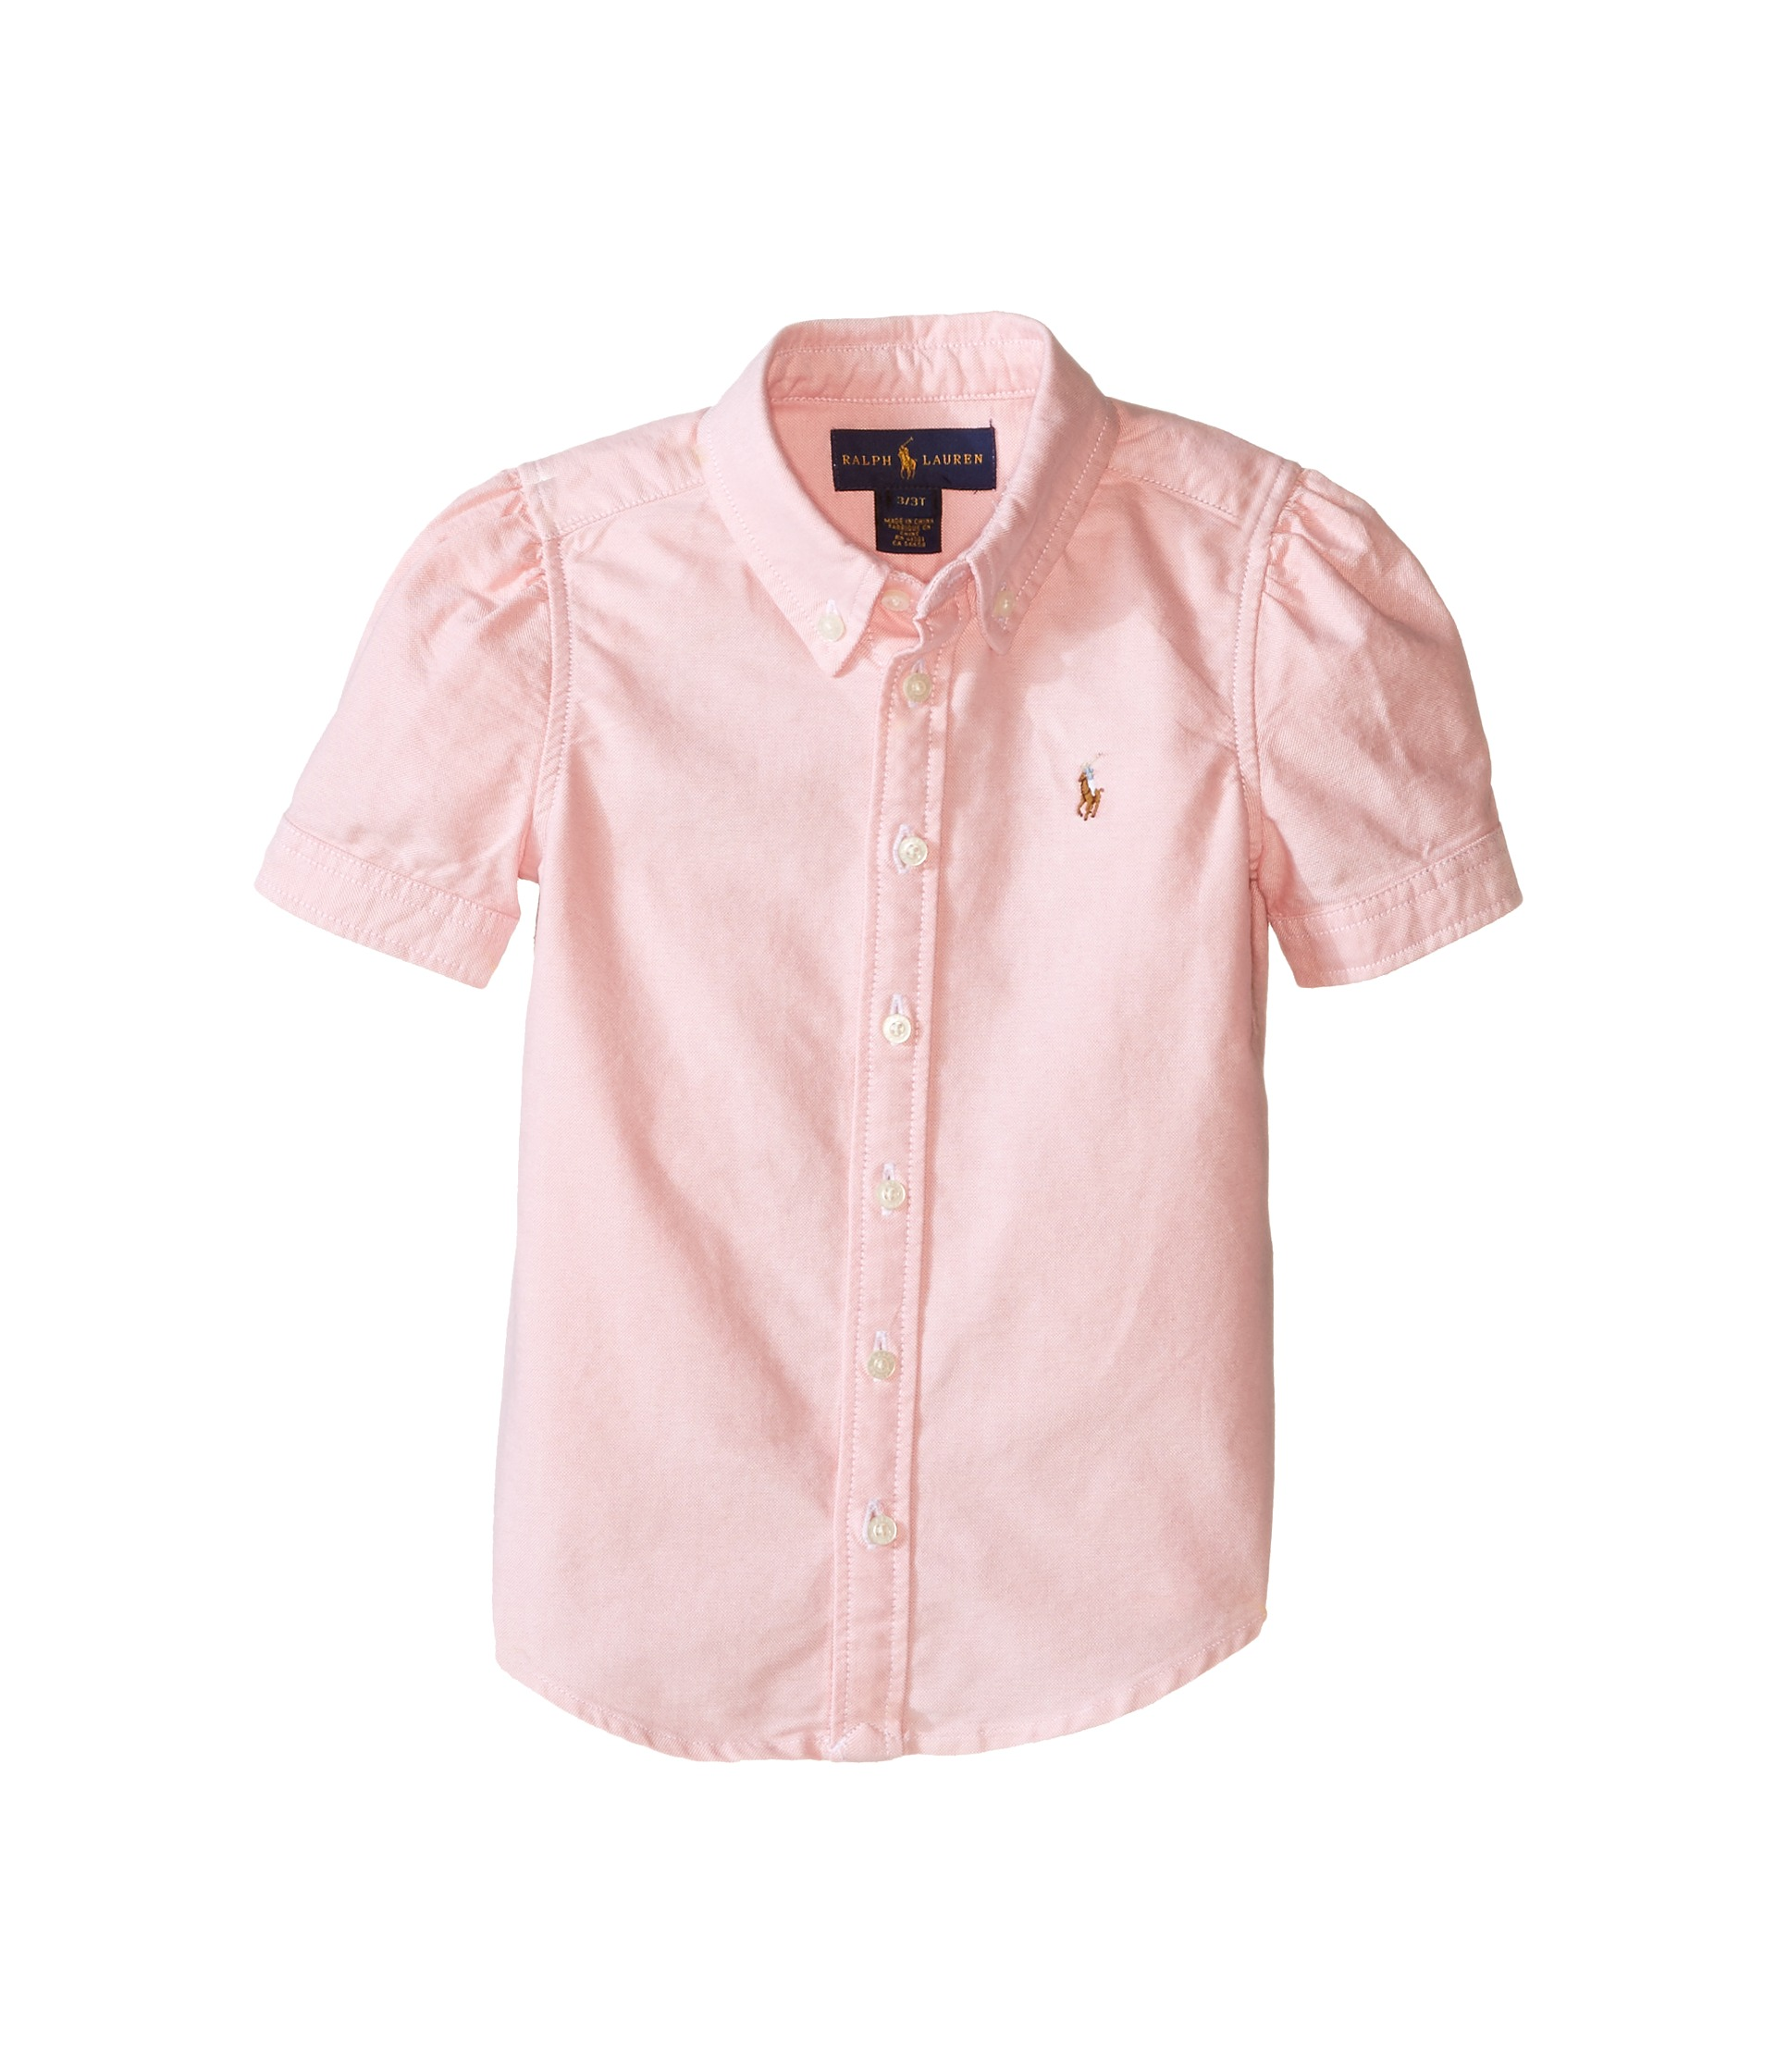 Polo ralph lauren kids classic solid oxford shirt toddler for Ralph lauren kids